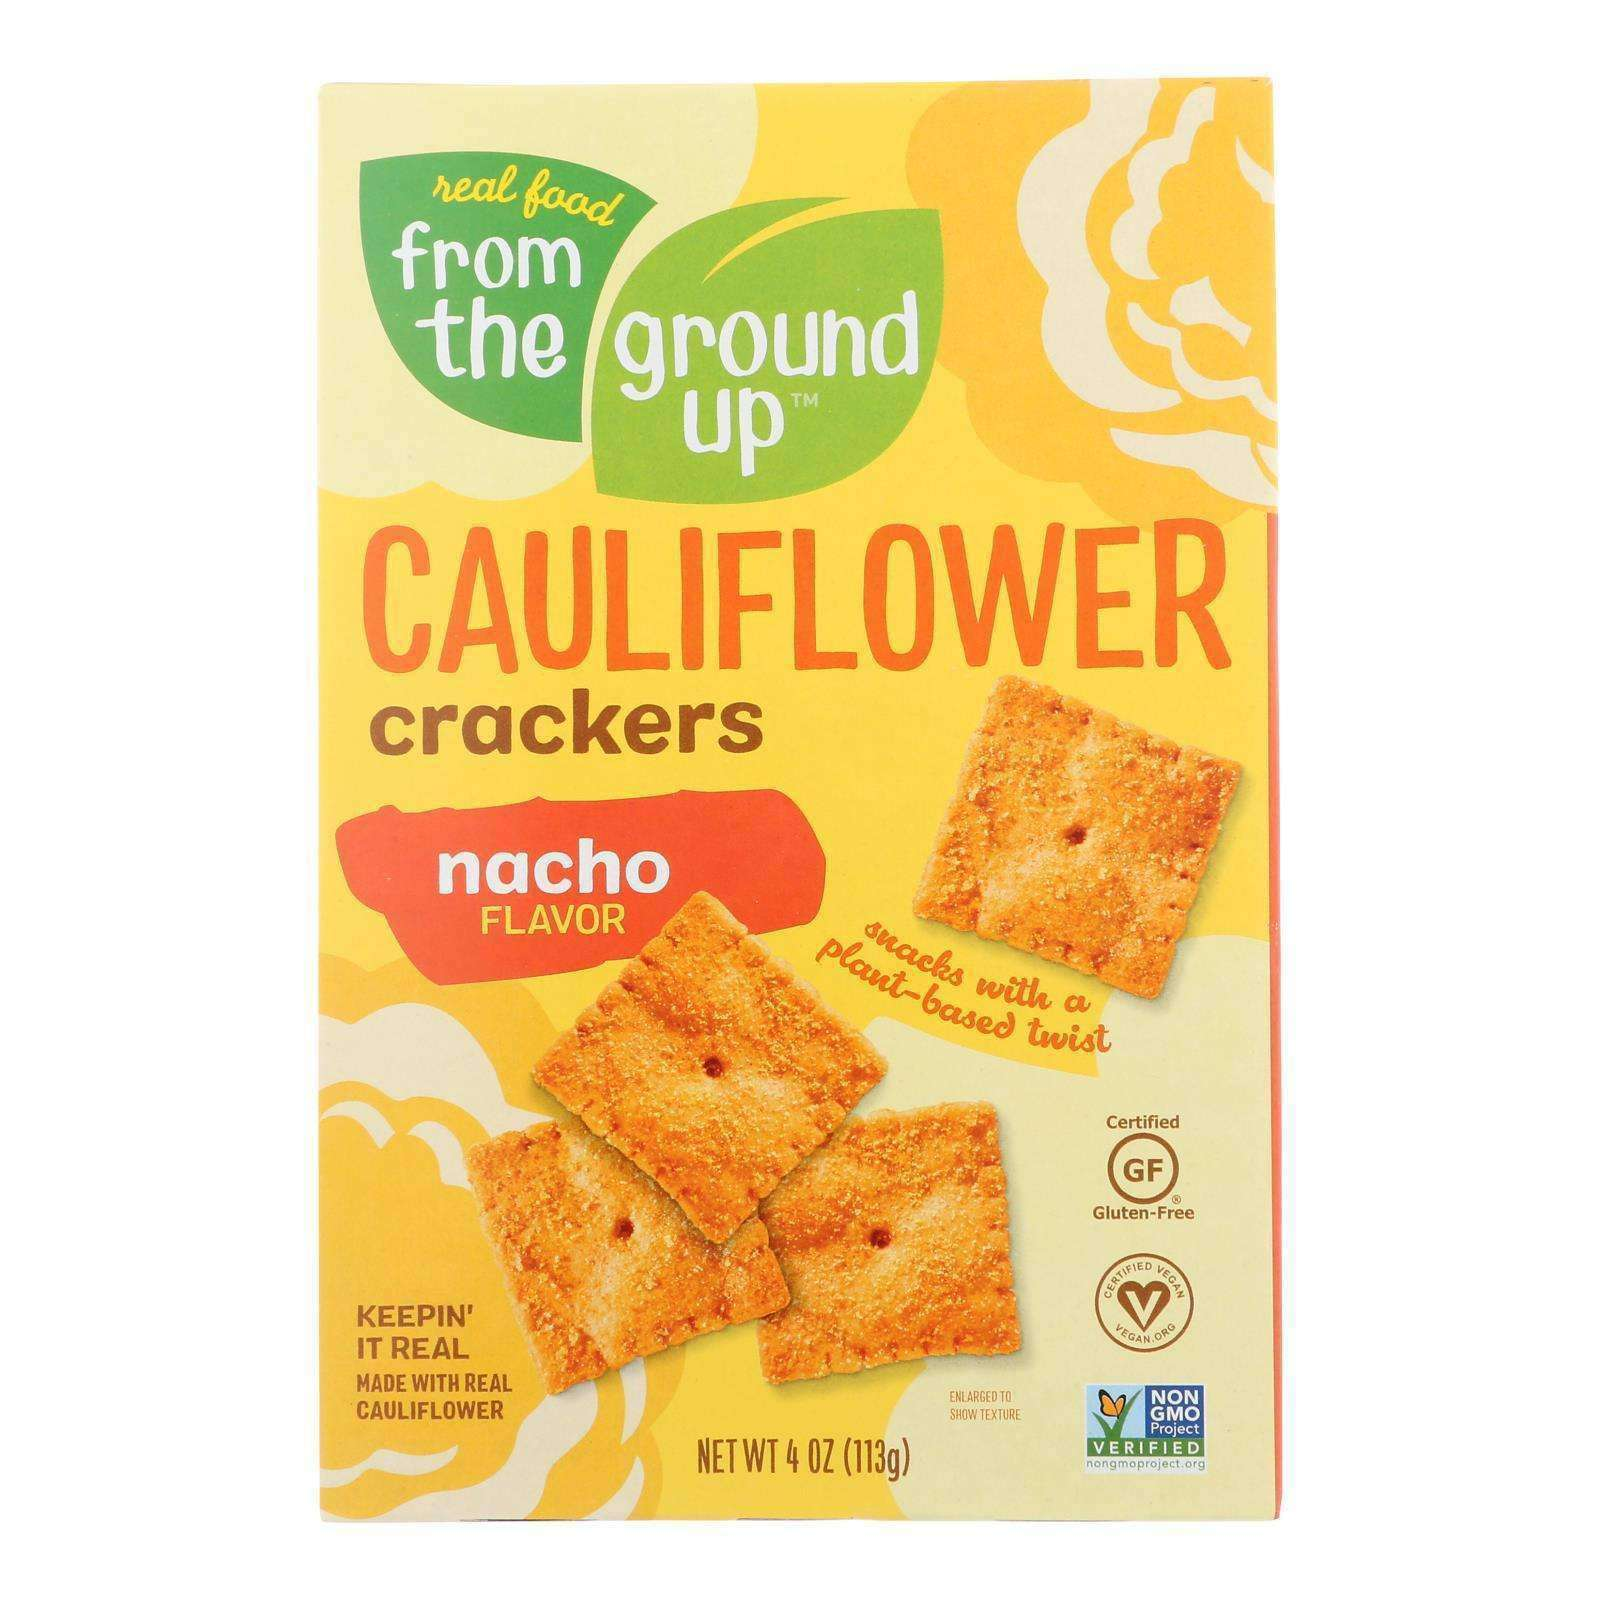 From The Ground Up - Cauliflower Crackers - Nacho - Case Of 6 - 4 Oz. - BeeGreen